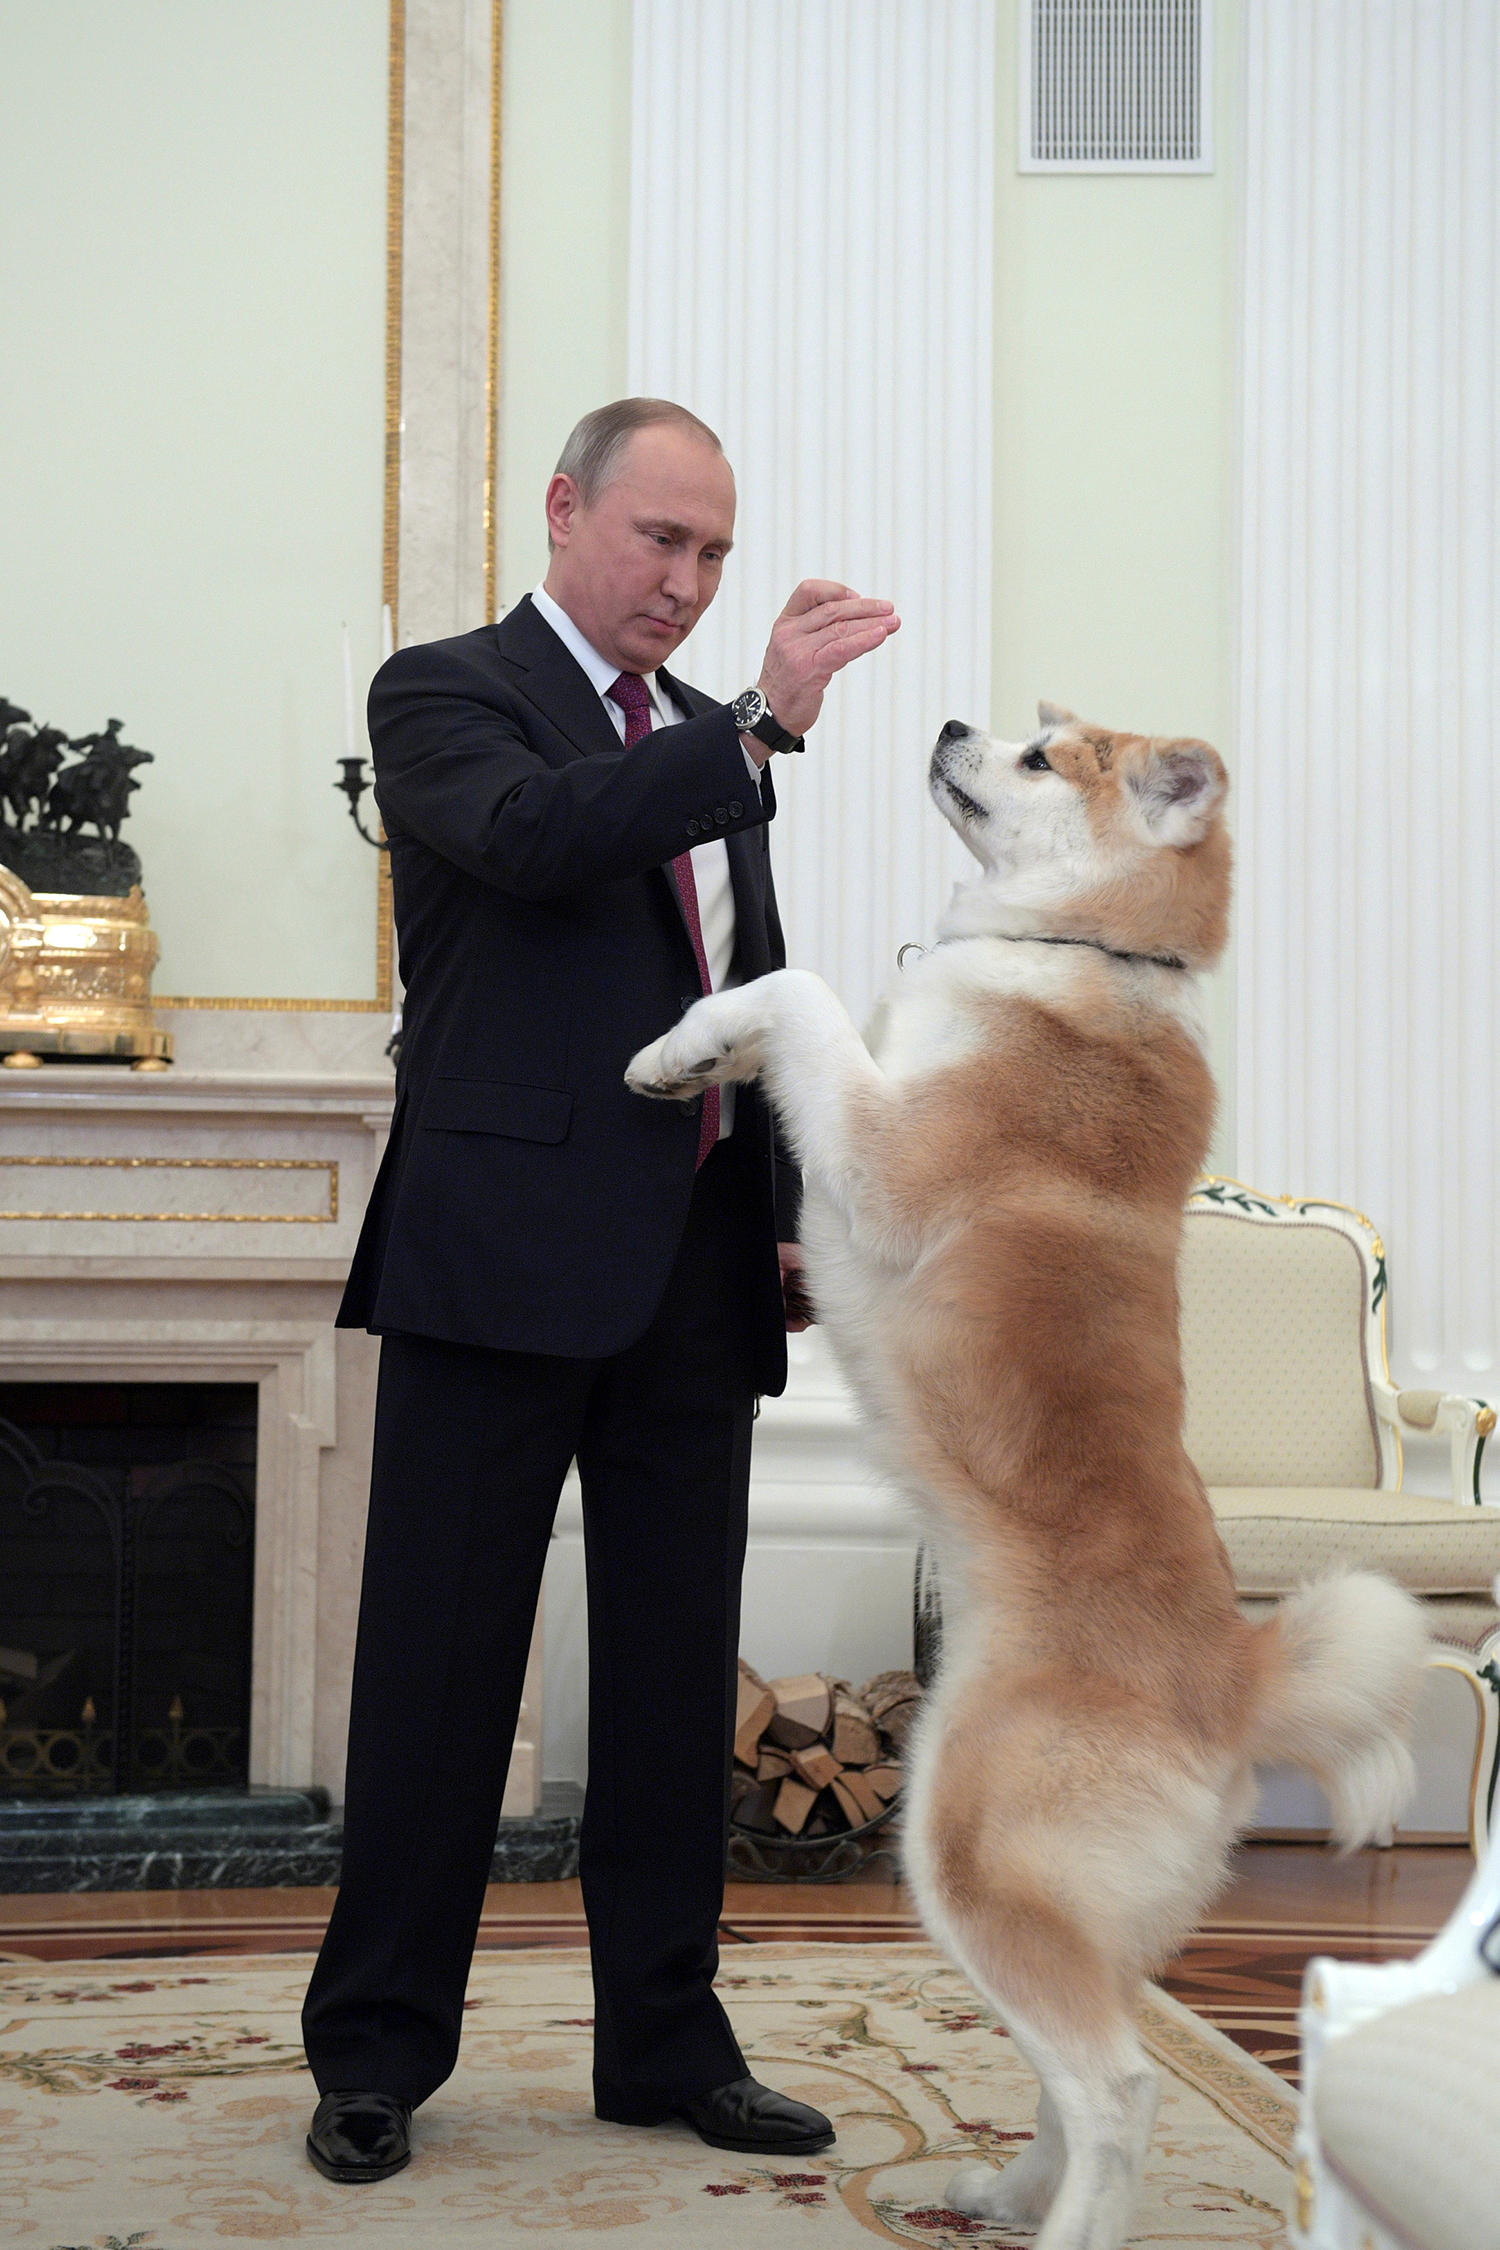 MOSCOW 2016-12-13 Russian President Vladimir Putin plays with his dog Yume, a female Akita Inu, before giving an interview to Japanese Nippon Television and Yomiuri newspaper at the Kremlin in Moscow, Russia, December 7, 2016. Picture taken December 7, 2016. Sputnik/Kremlin/Alexei Druzhinin via REUTERS ATTENTION EDITORS - THIS IMAGE WAS PROVIDED BY A THIRD PARTY. EDITORIAL USE ONLY. TPX IMAGES OF THE DAY Photo: / REUTERS / TT / kod 72000